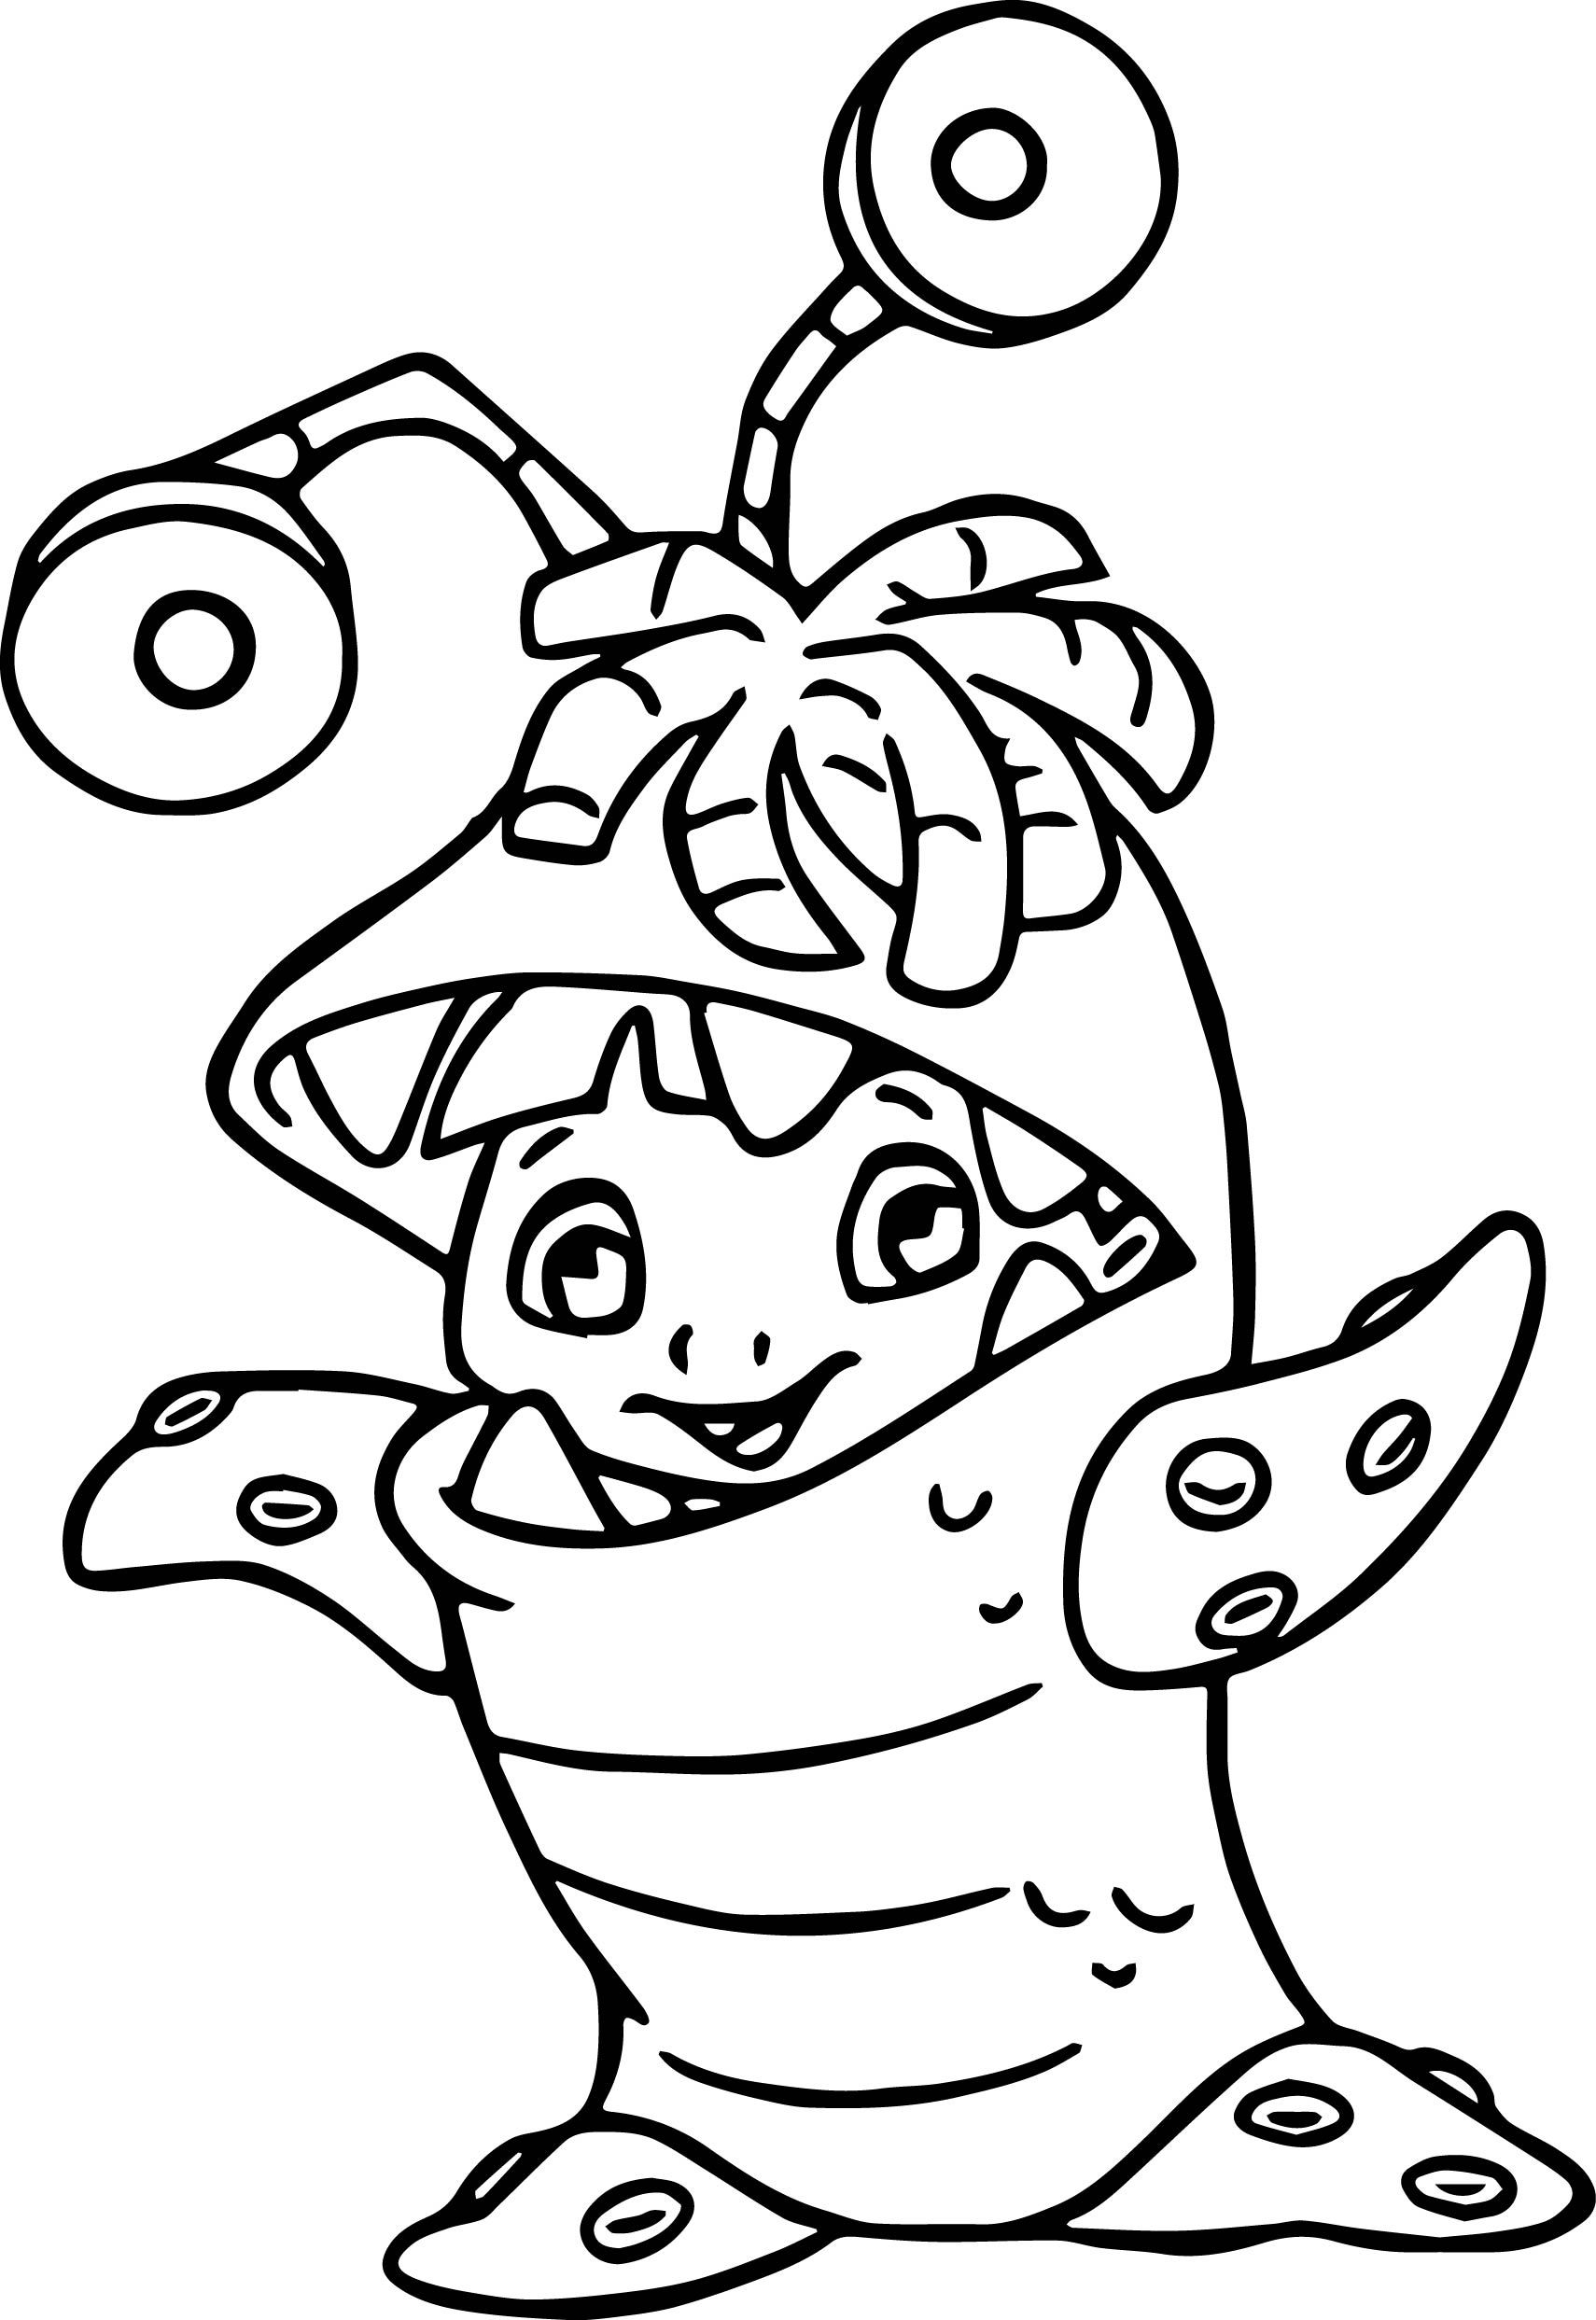 Disney Monsters Inc Coloring Pages Monster Coloring Pages Disney Coloring Pages Halloween Coloring Pages